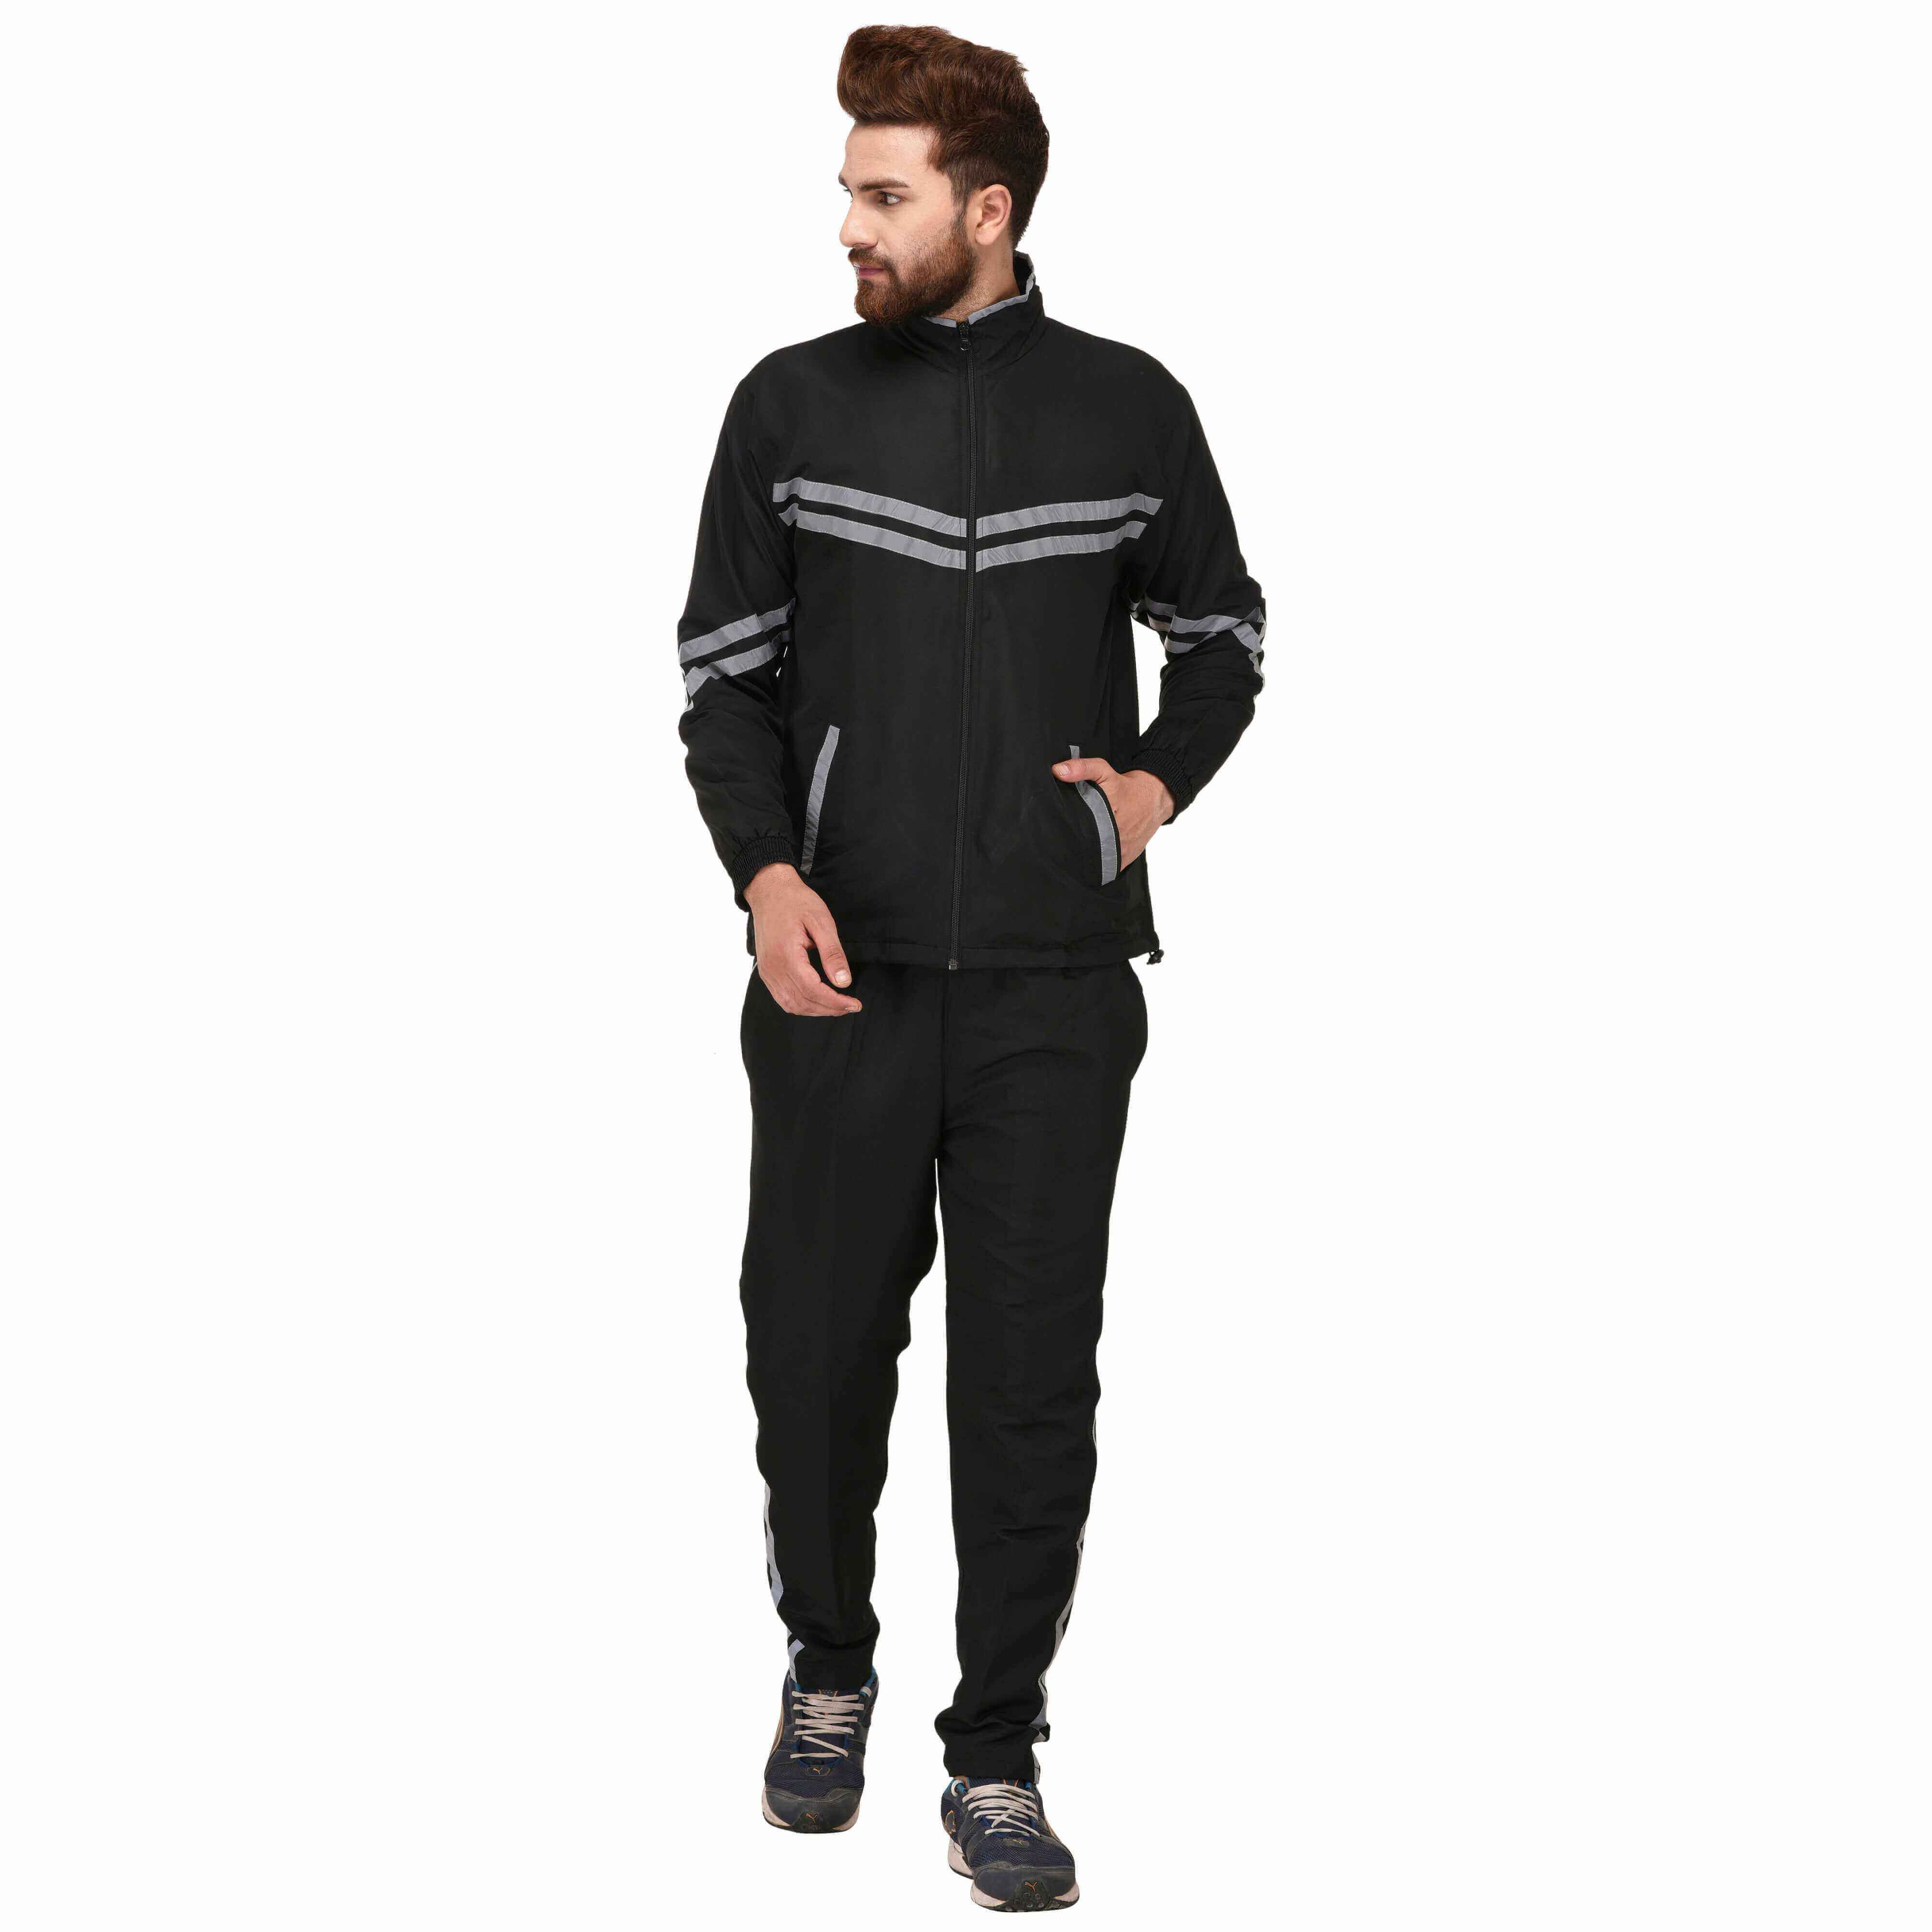 Grey Tracksuit Manufacturers in Nanded